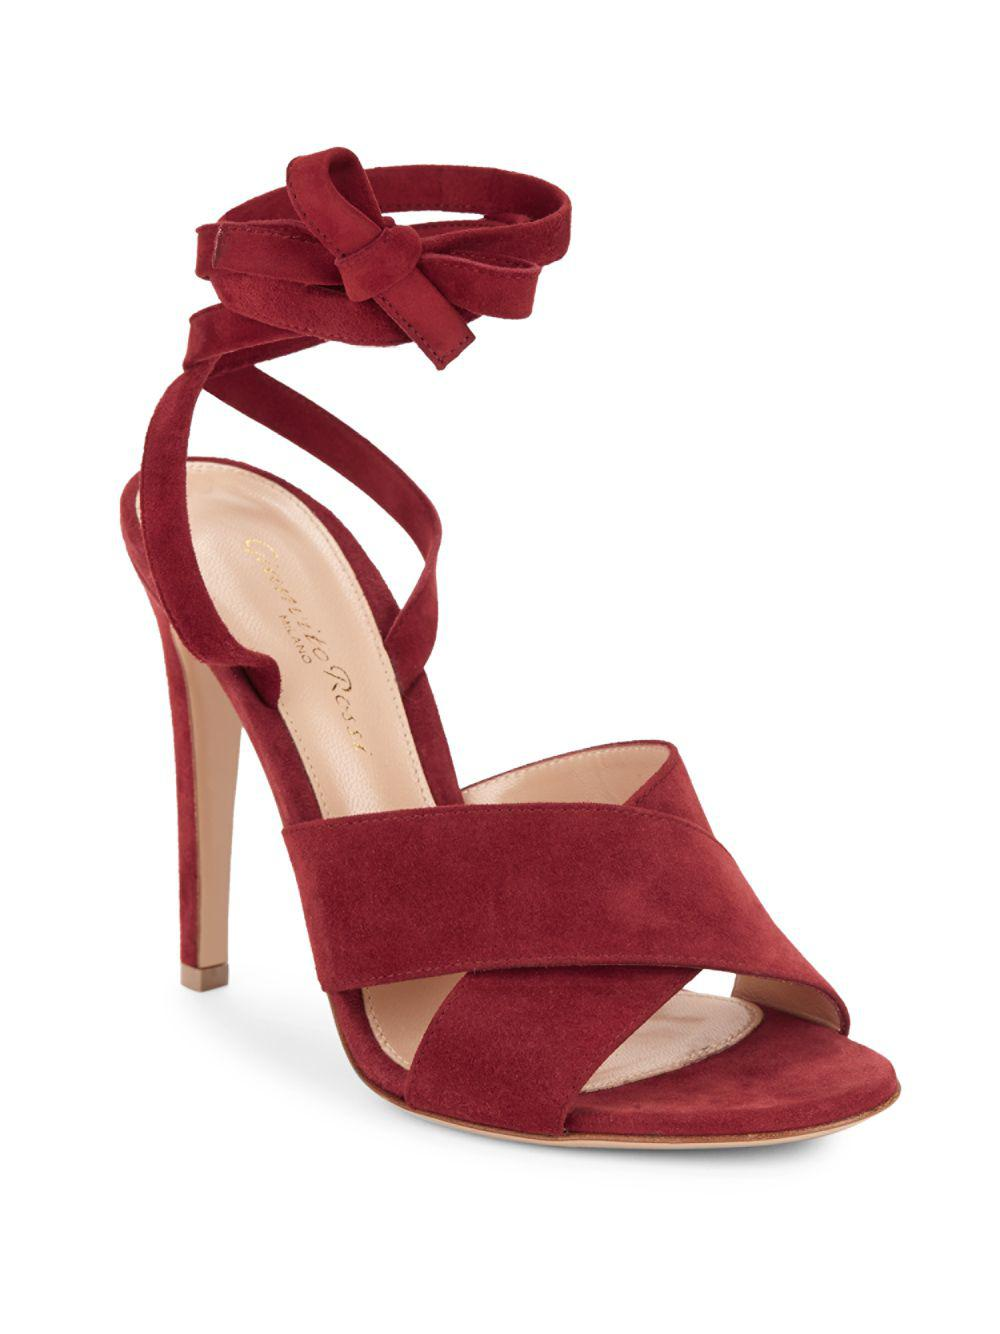 25f0571b177 Gianvito Rossi Crisscross Leather Ankle-strap Sandals in Red - Save ...